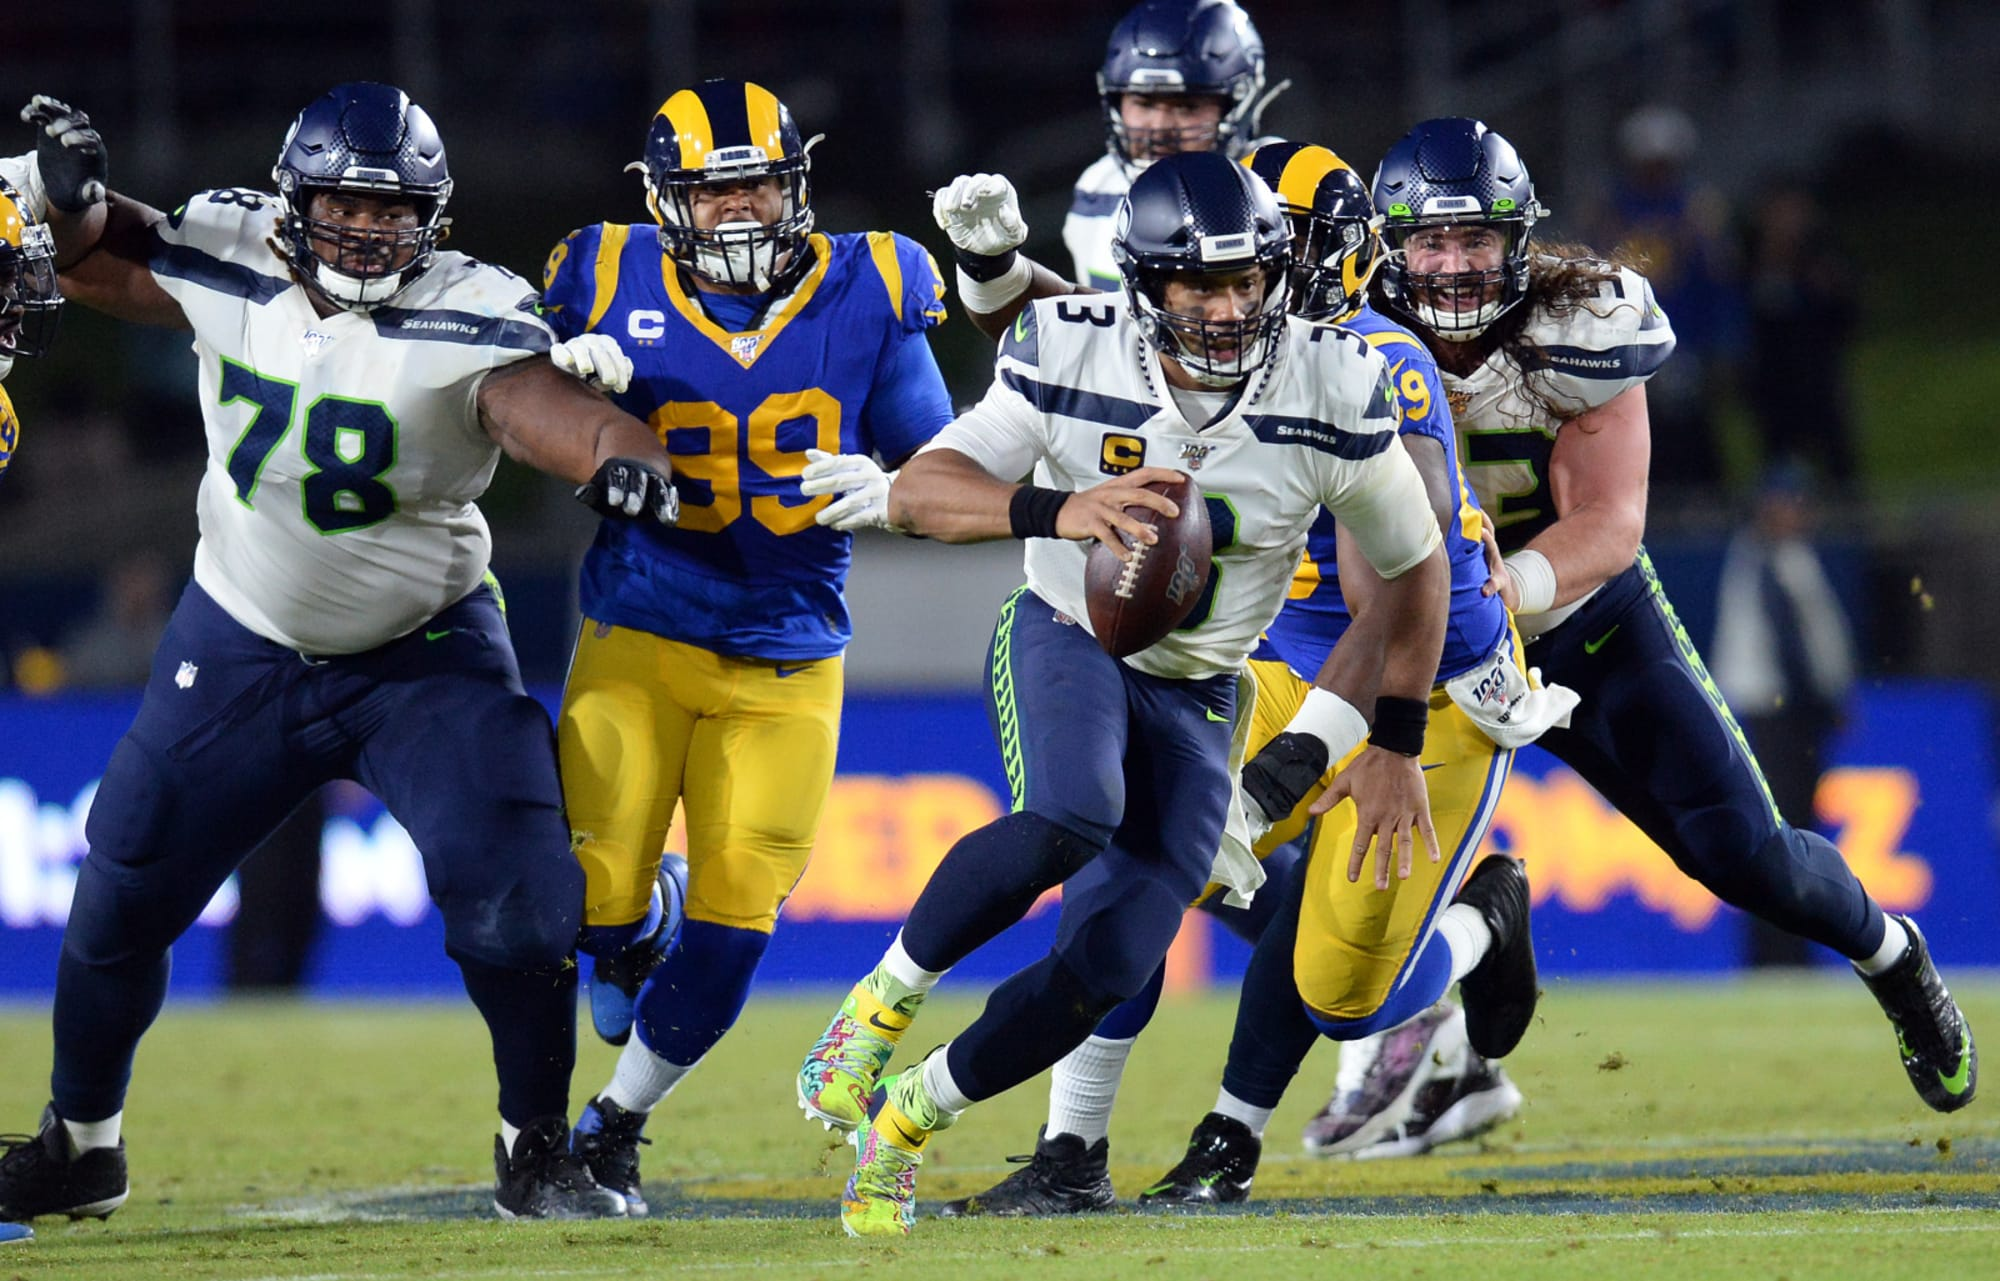 Nfl Com Says Seahawks Are Not As Good As The Rams